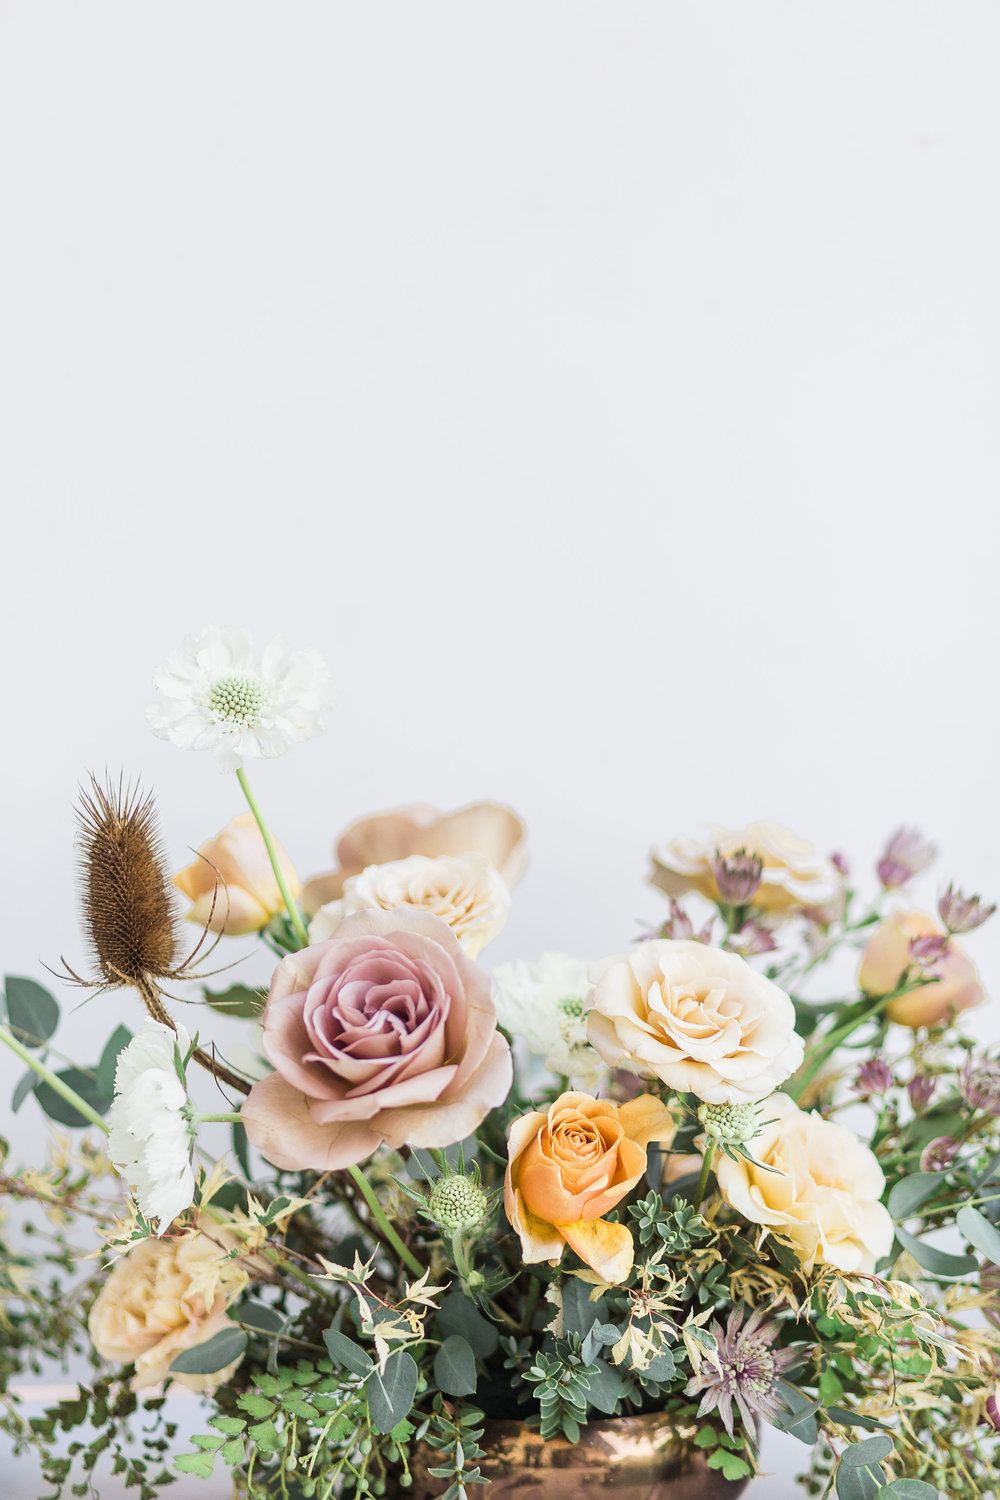 Georgia-Ruth-Photography-Flat-Lays-Table-Details-151.jpg